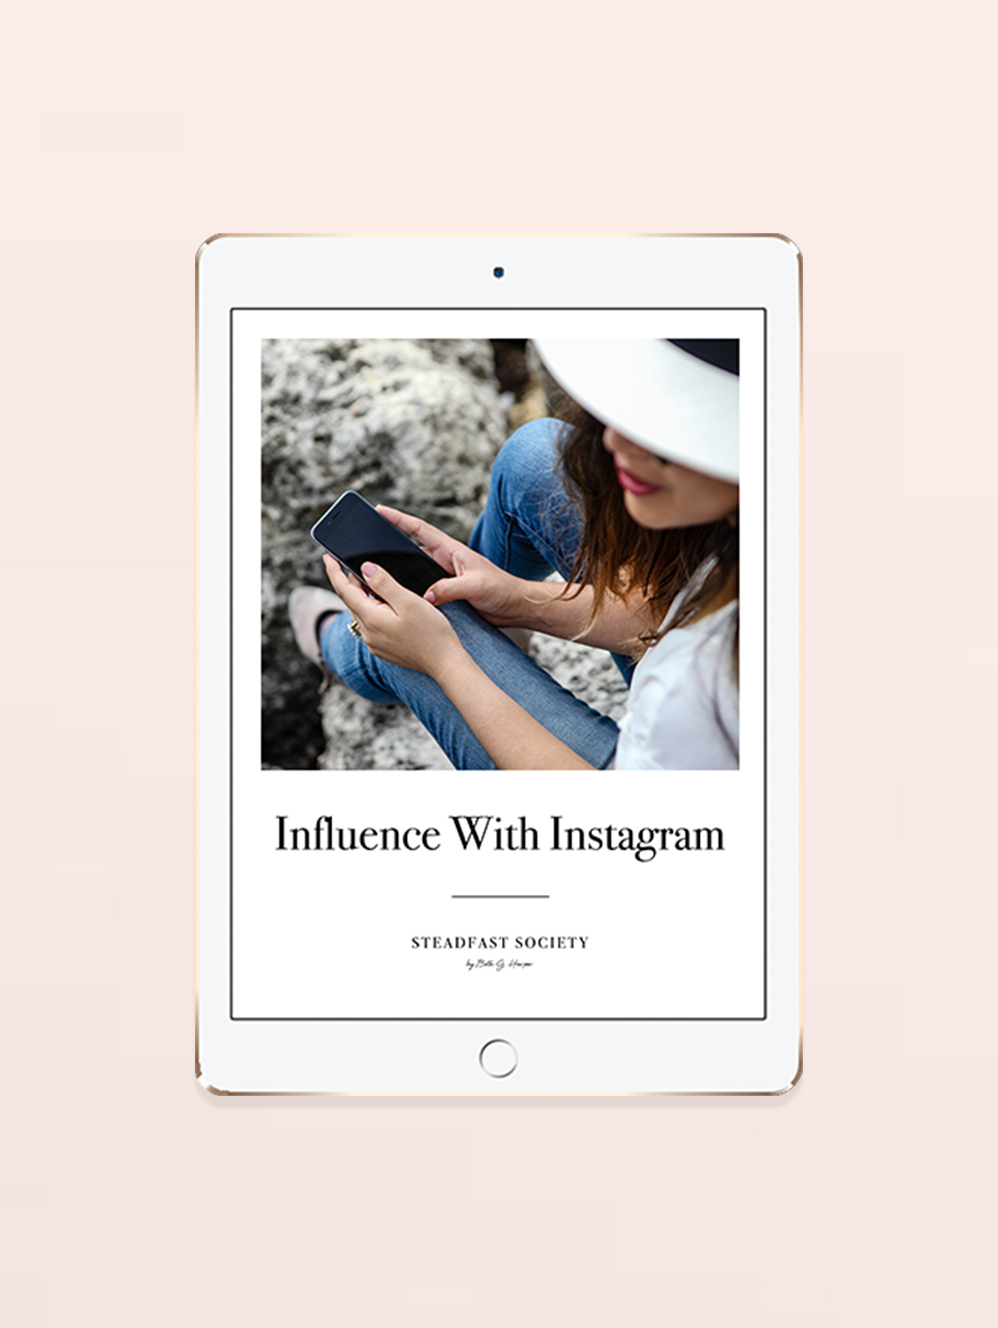 Copy of <p><strong>Influence With Instagram</strong>$75/Mo. or $197 in Full<a href=aig-self-study>More →</a></p>